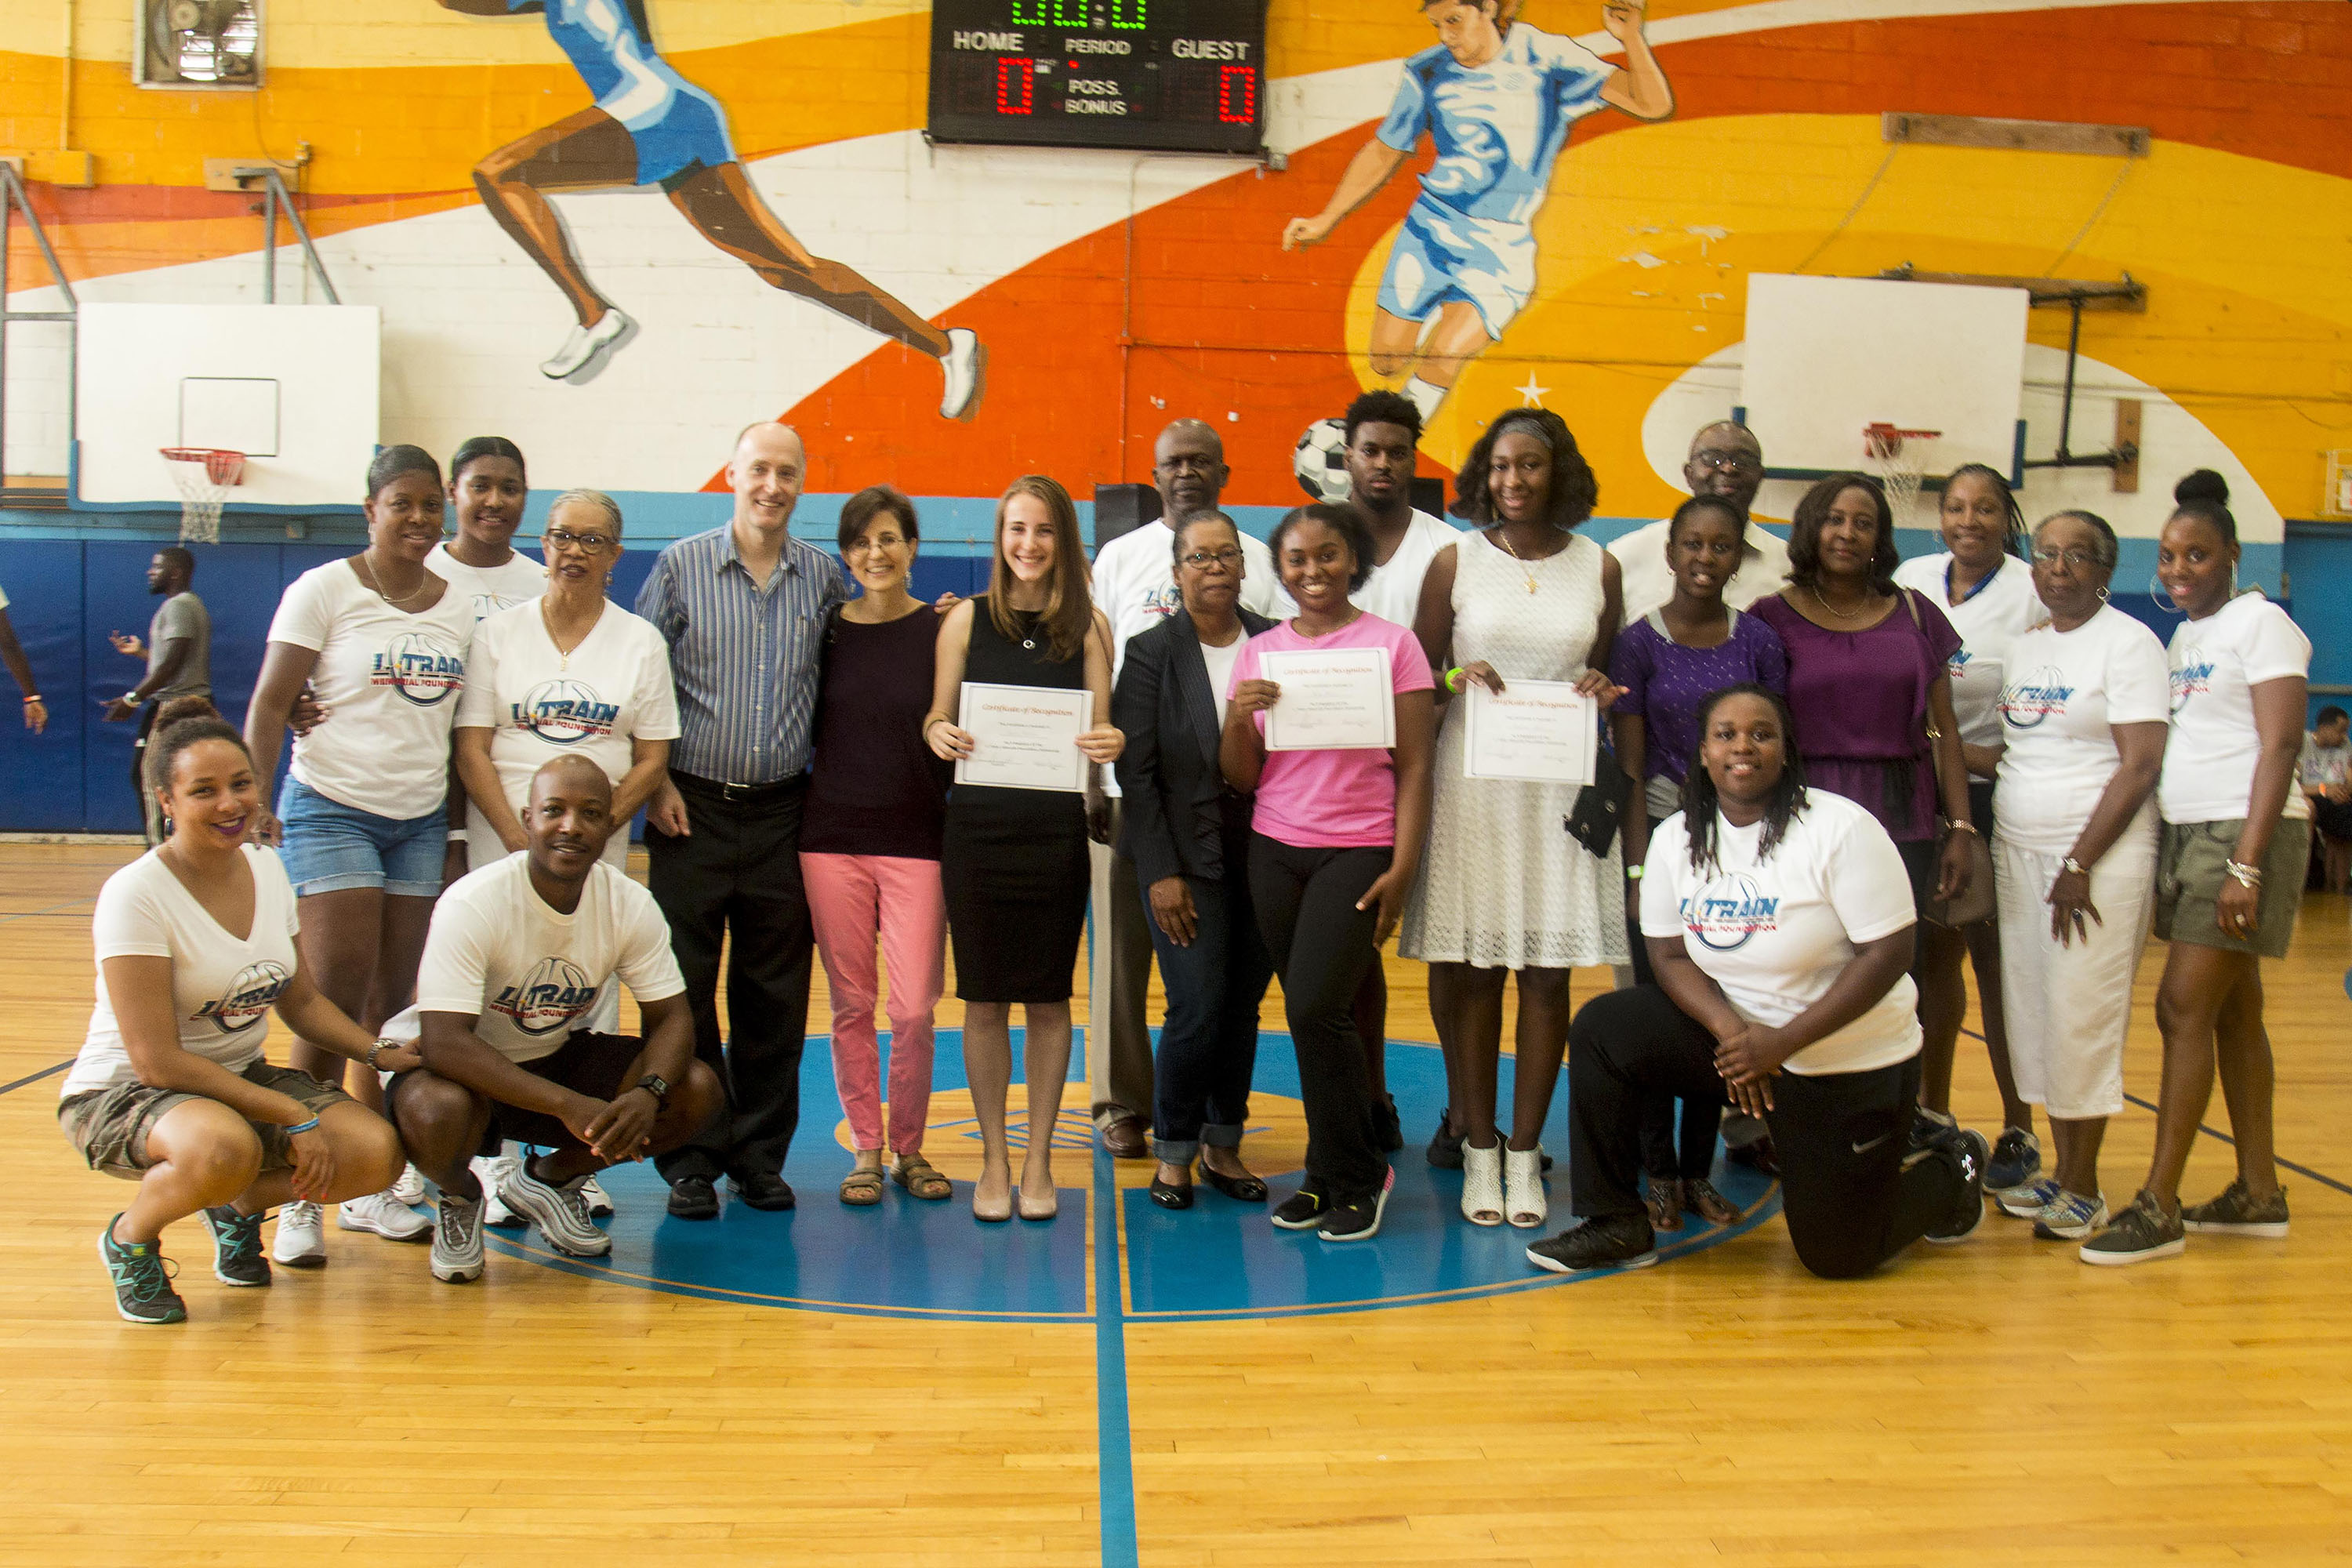 L-Train Memorial Foundation - Annual 3-On-3 Tournament (Boys and Girls Club Union, NJ) 08-07-16_0053